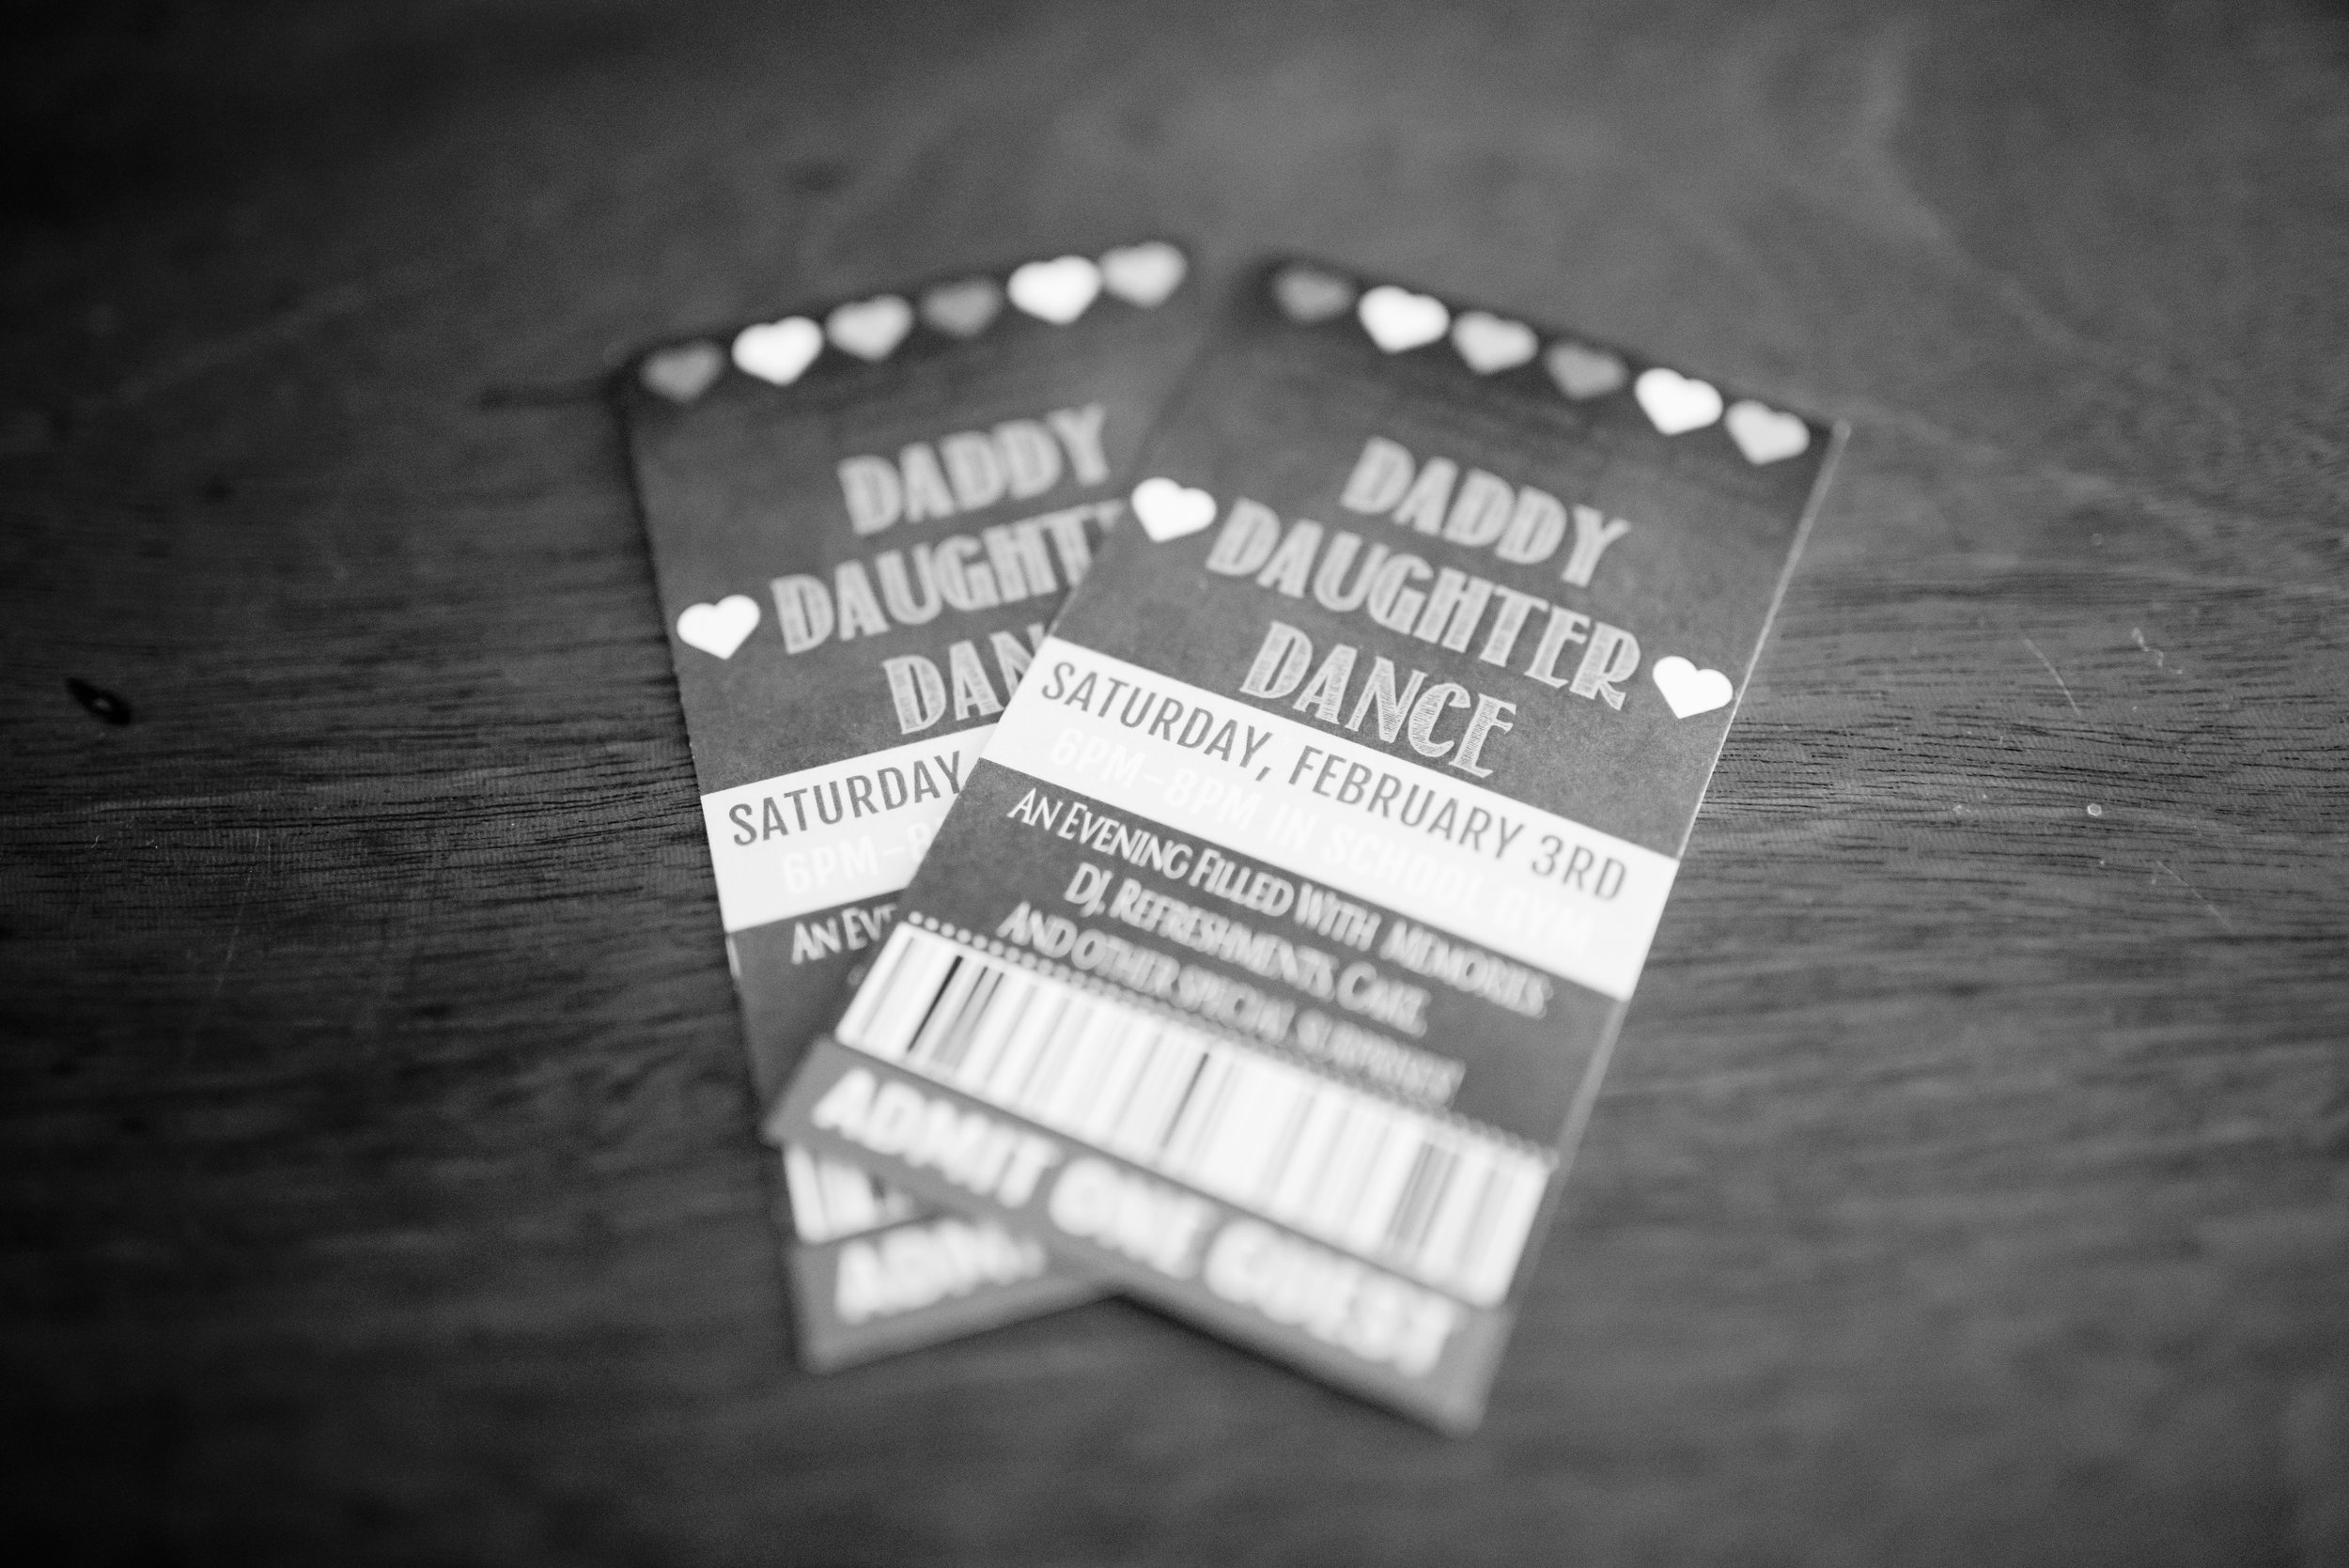 Tickets to Daddy Daughter Dance